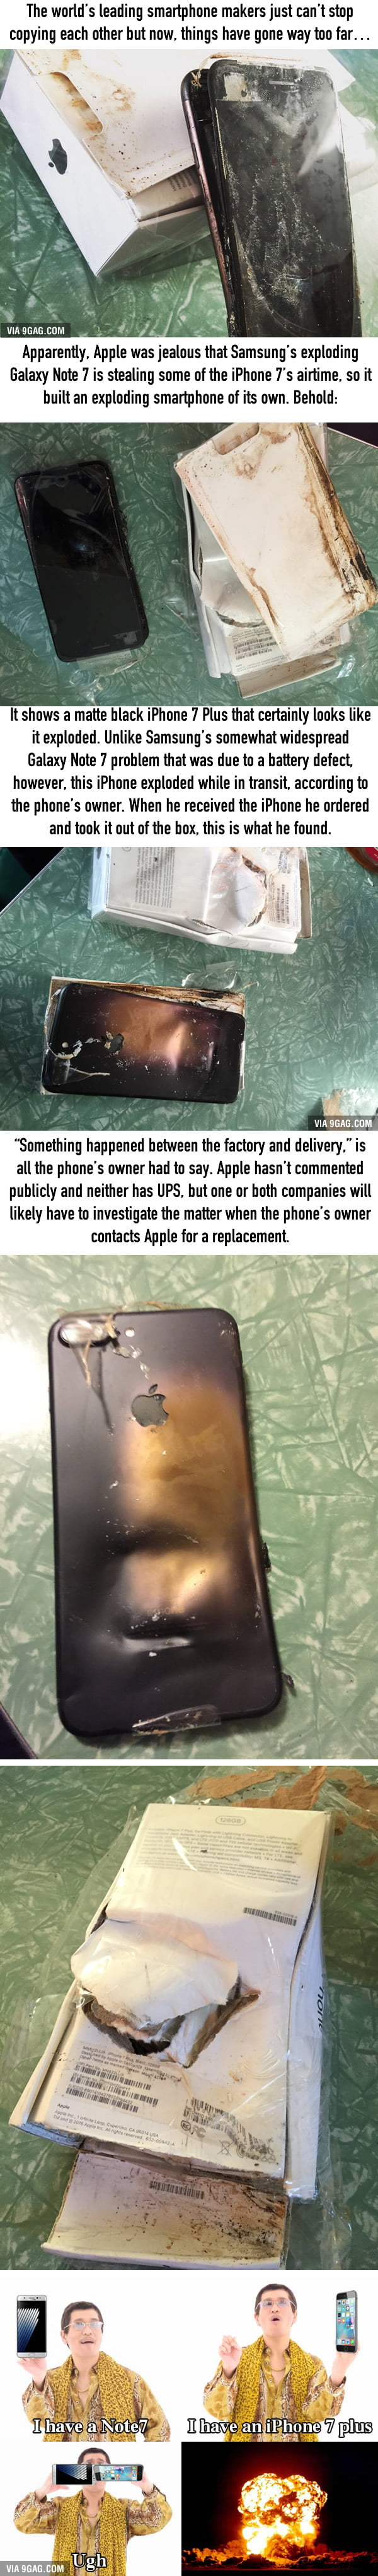 Yup, now the iPhone 7 is exploding